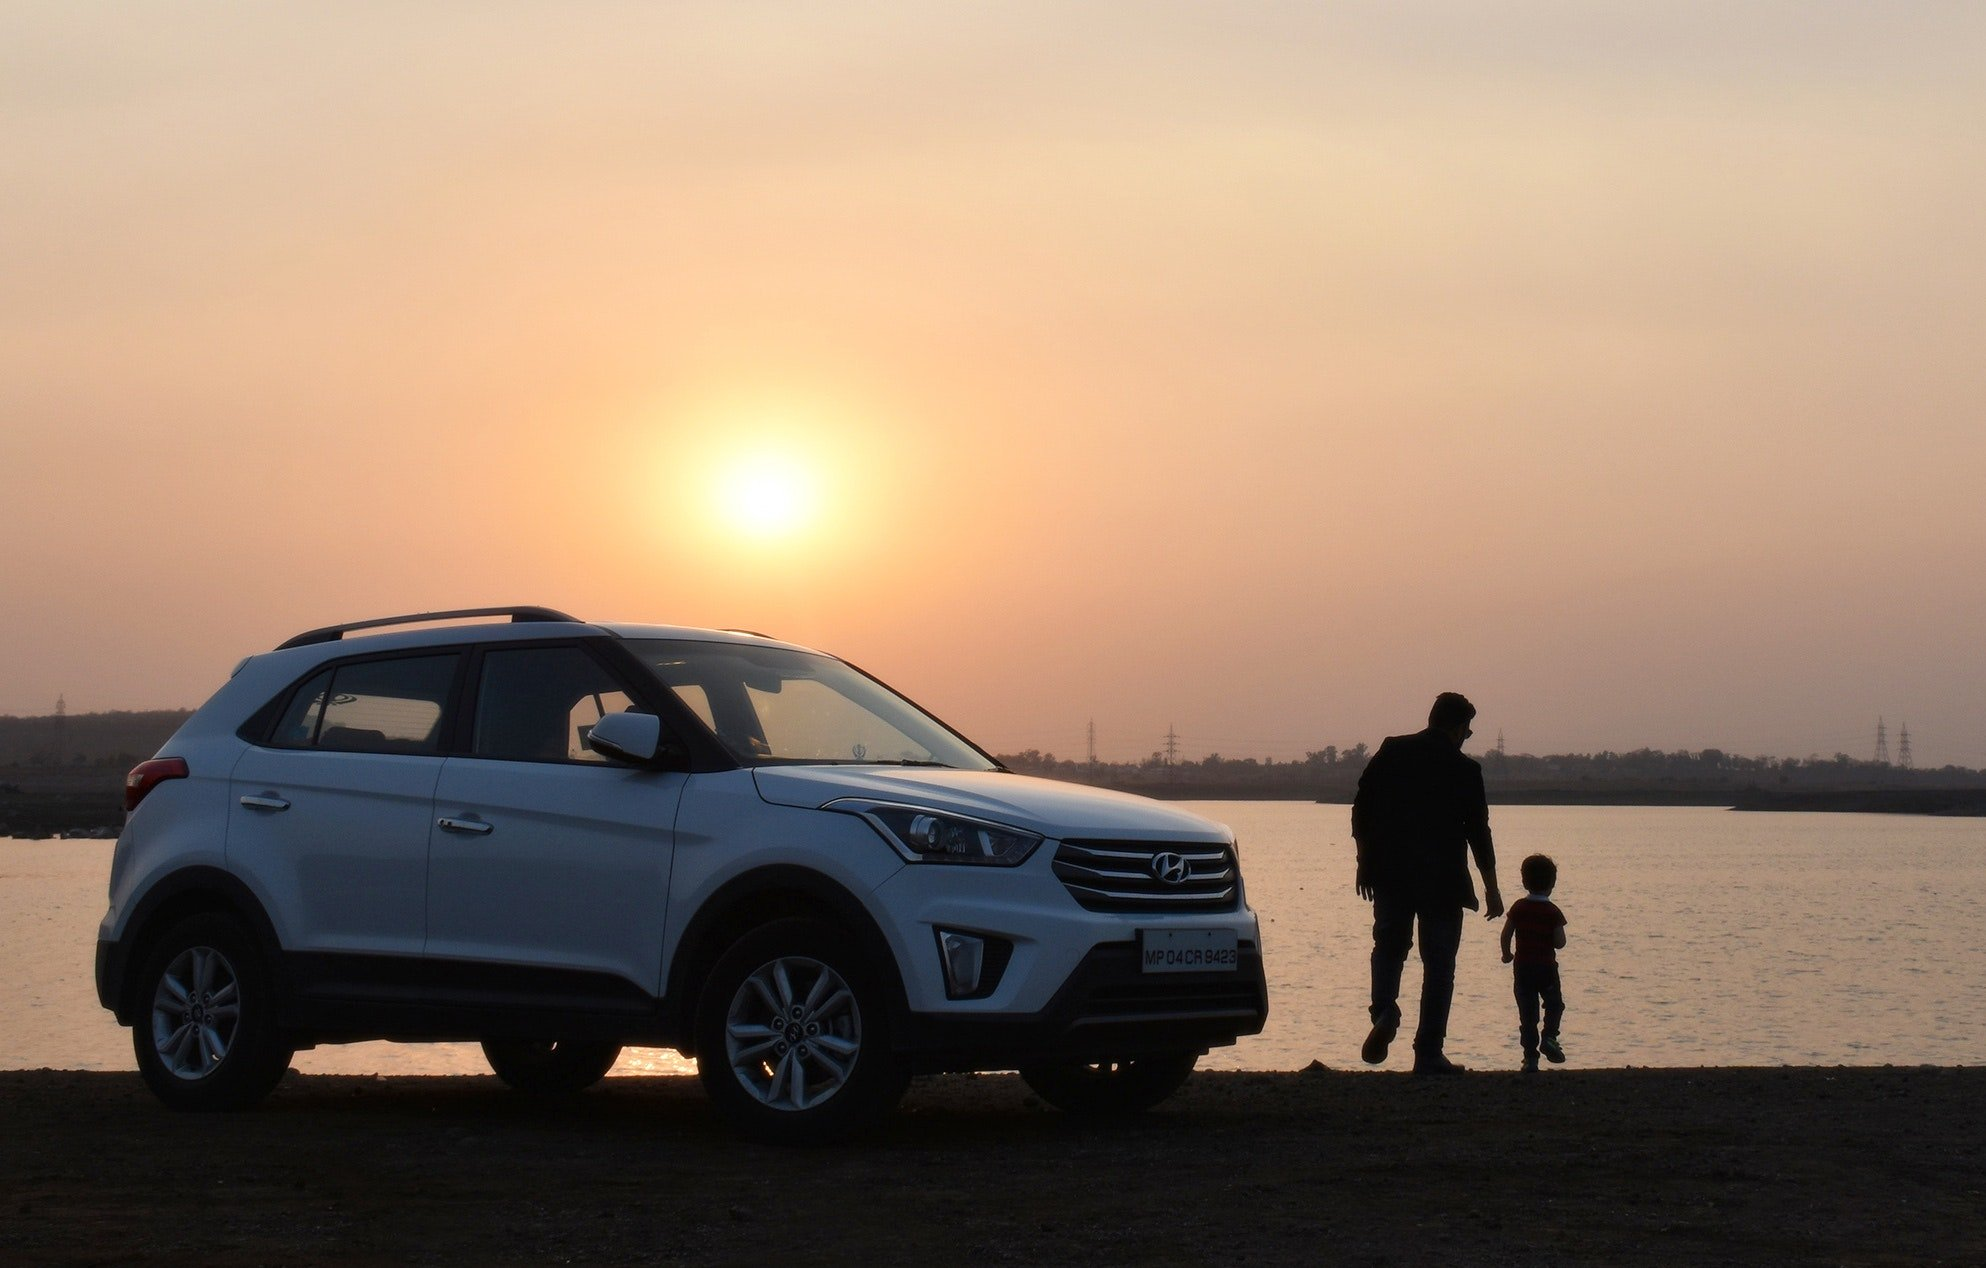 Man and child near a car with a sun setting in the background   Photo: Pexels